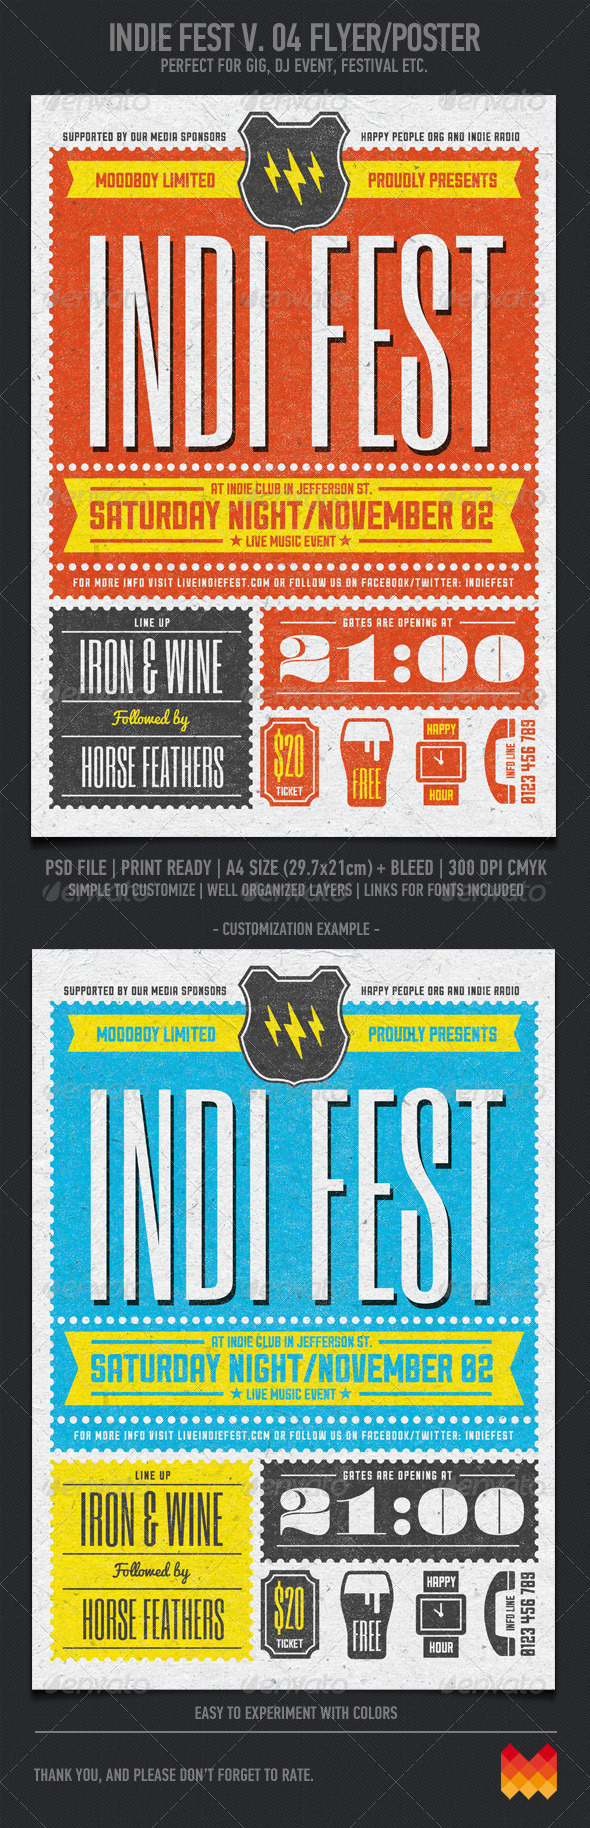 Indie Fest V. 04 Flyer/Poster - Events Flyers